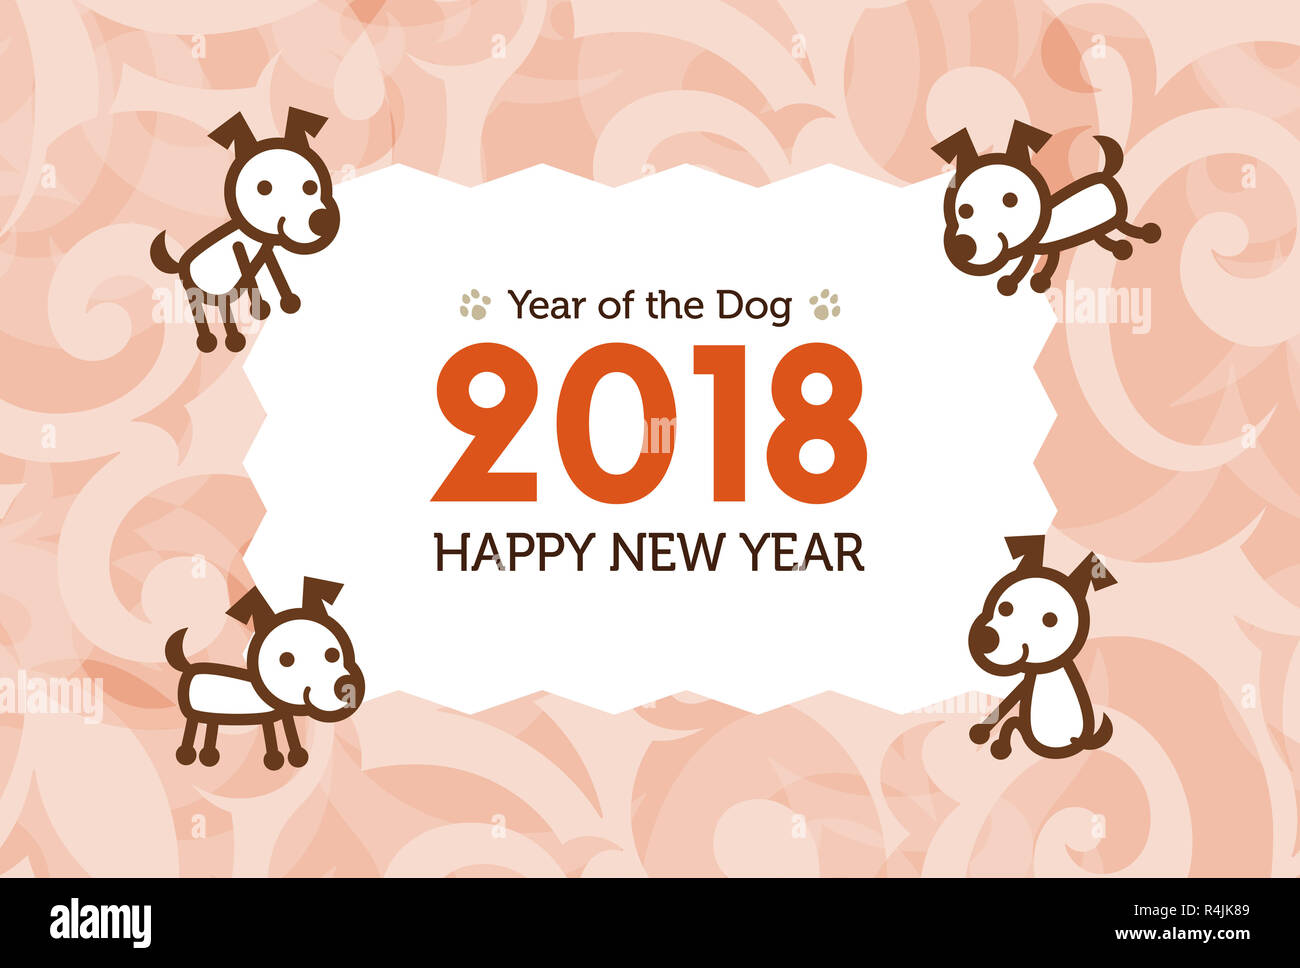 happy new year card 2018 year of the dog illustration